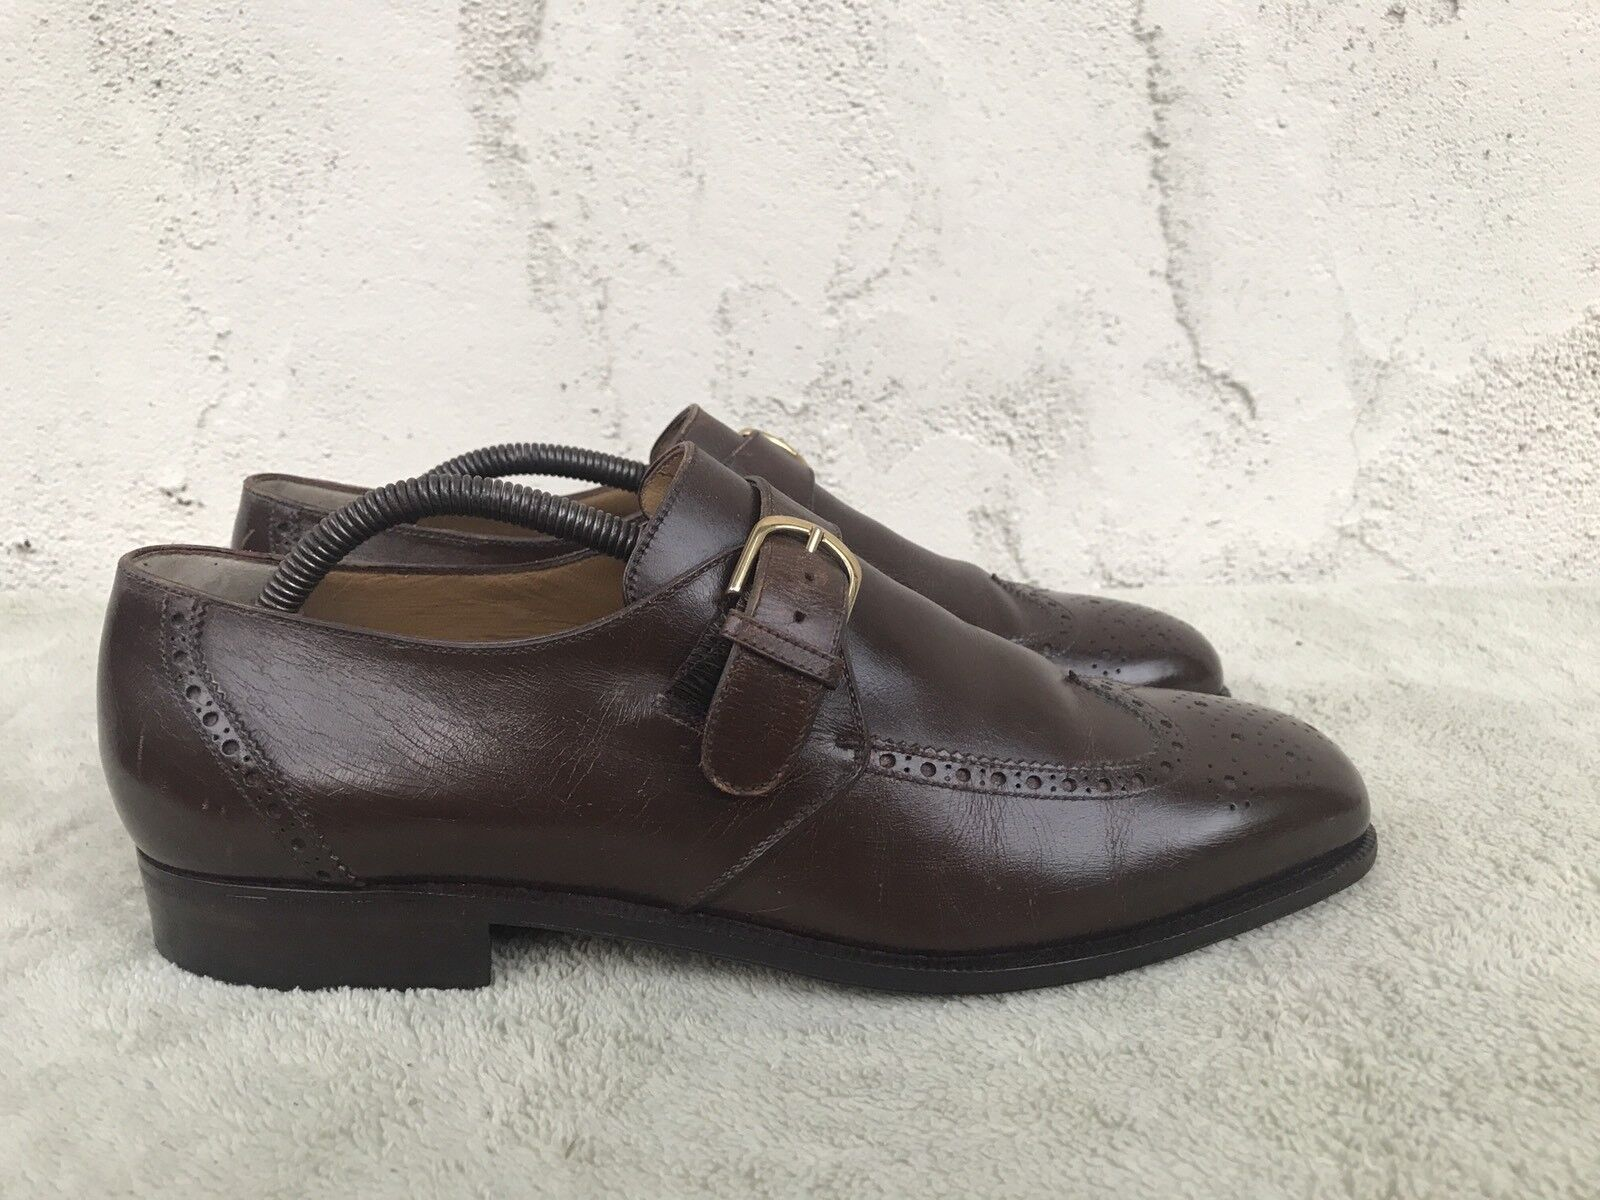 RARE EUC Bally Vintage Wingtip Washed Brown Monk Strap Leather shoes Size US 8.5